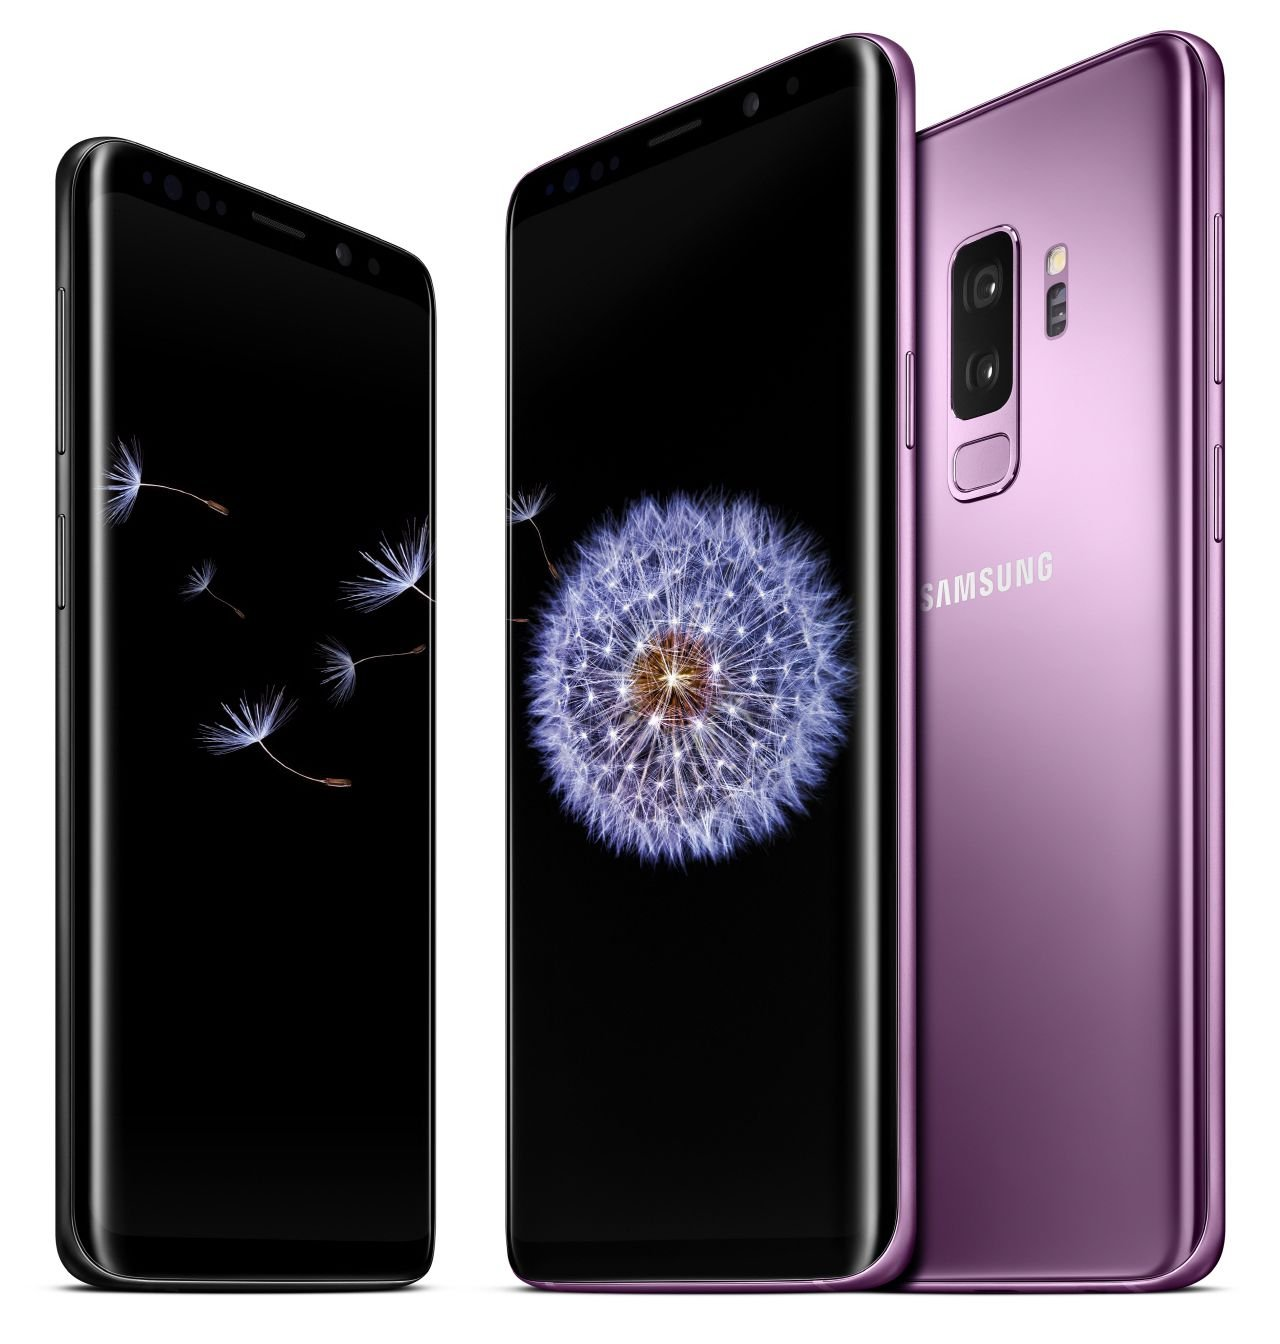 Samsung Galaxy S9 and Galaxy S9 Plus: New Features, Specs, Release Date and Availability 7